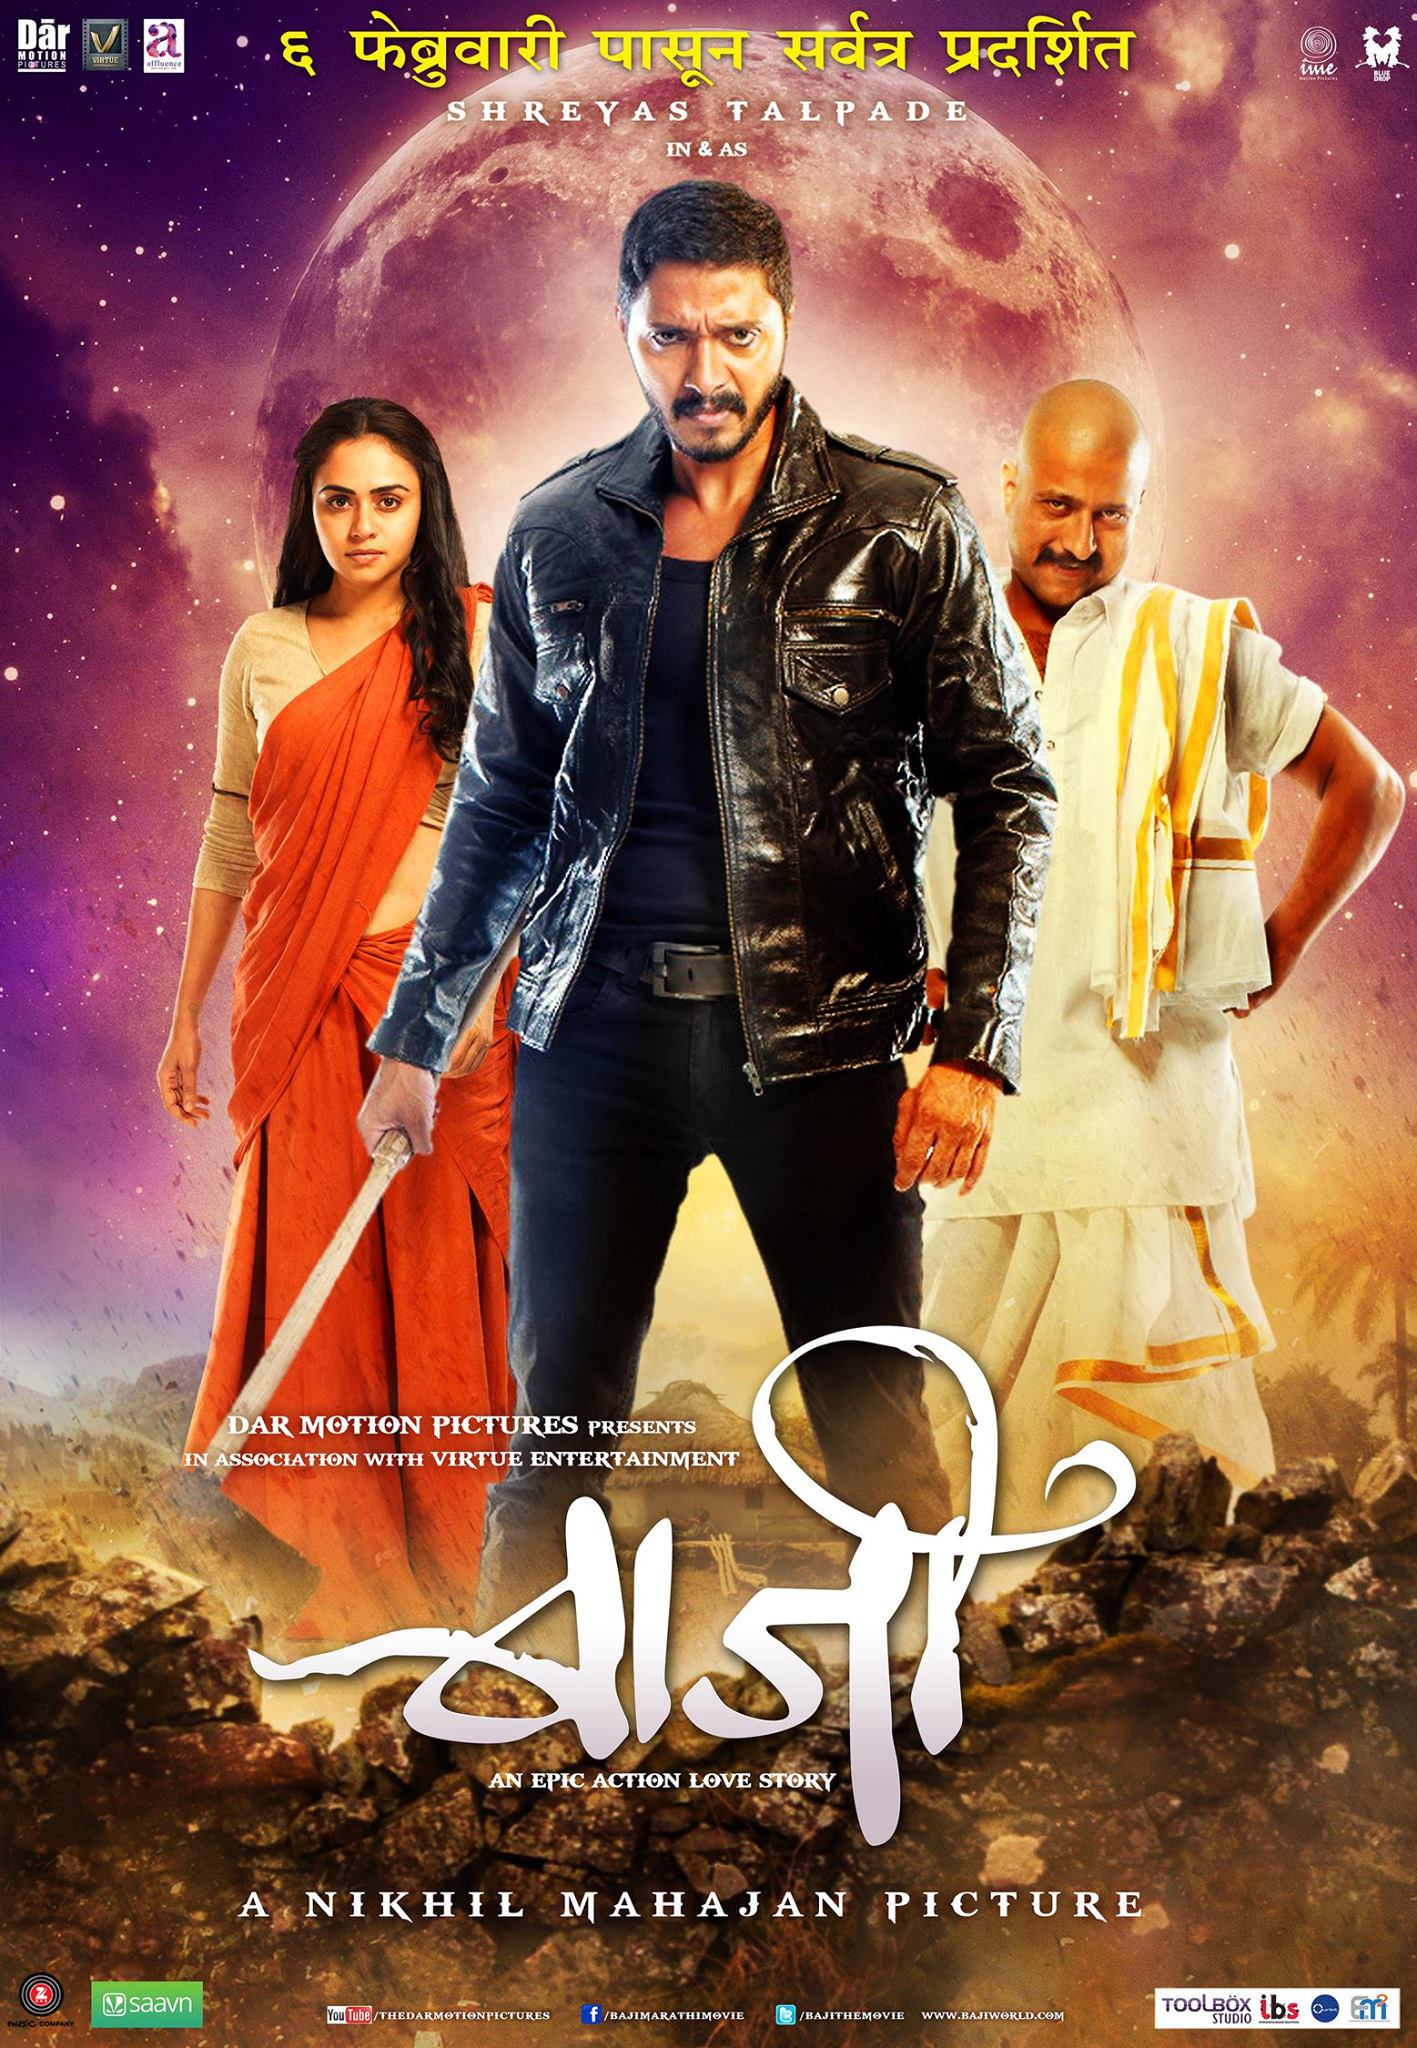 Baji Marathi Movie - Photo Gallery Posters Still Photos